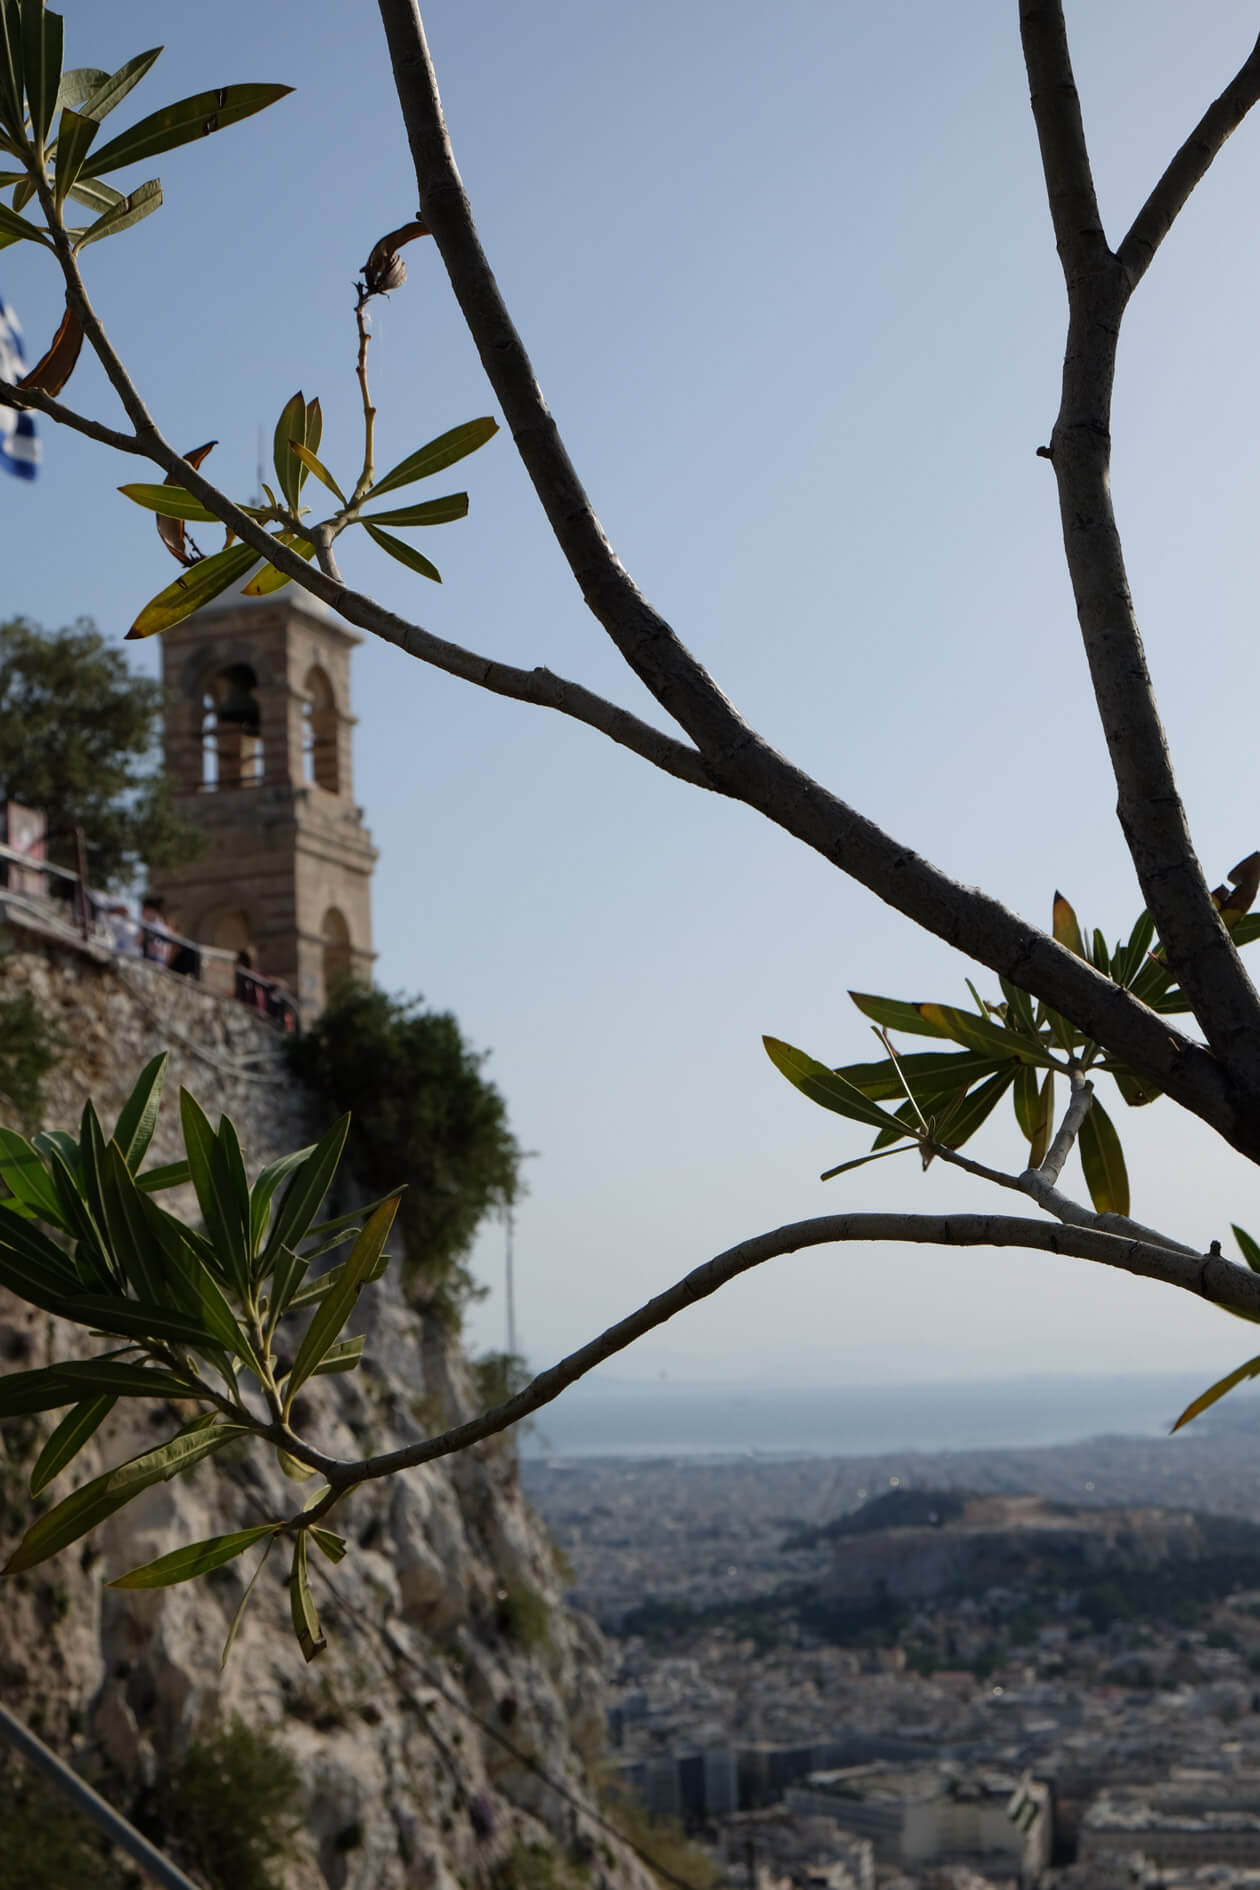 Looking out from one of the bars on Lycabettus Hill